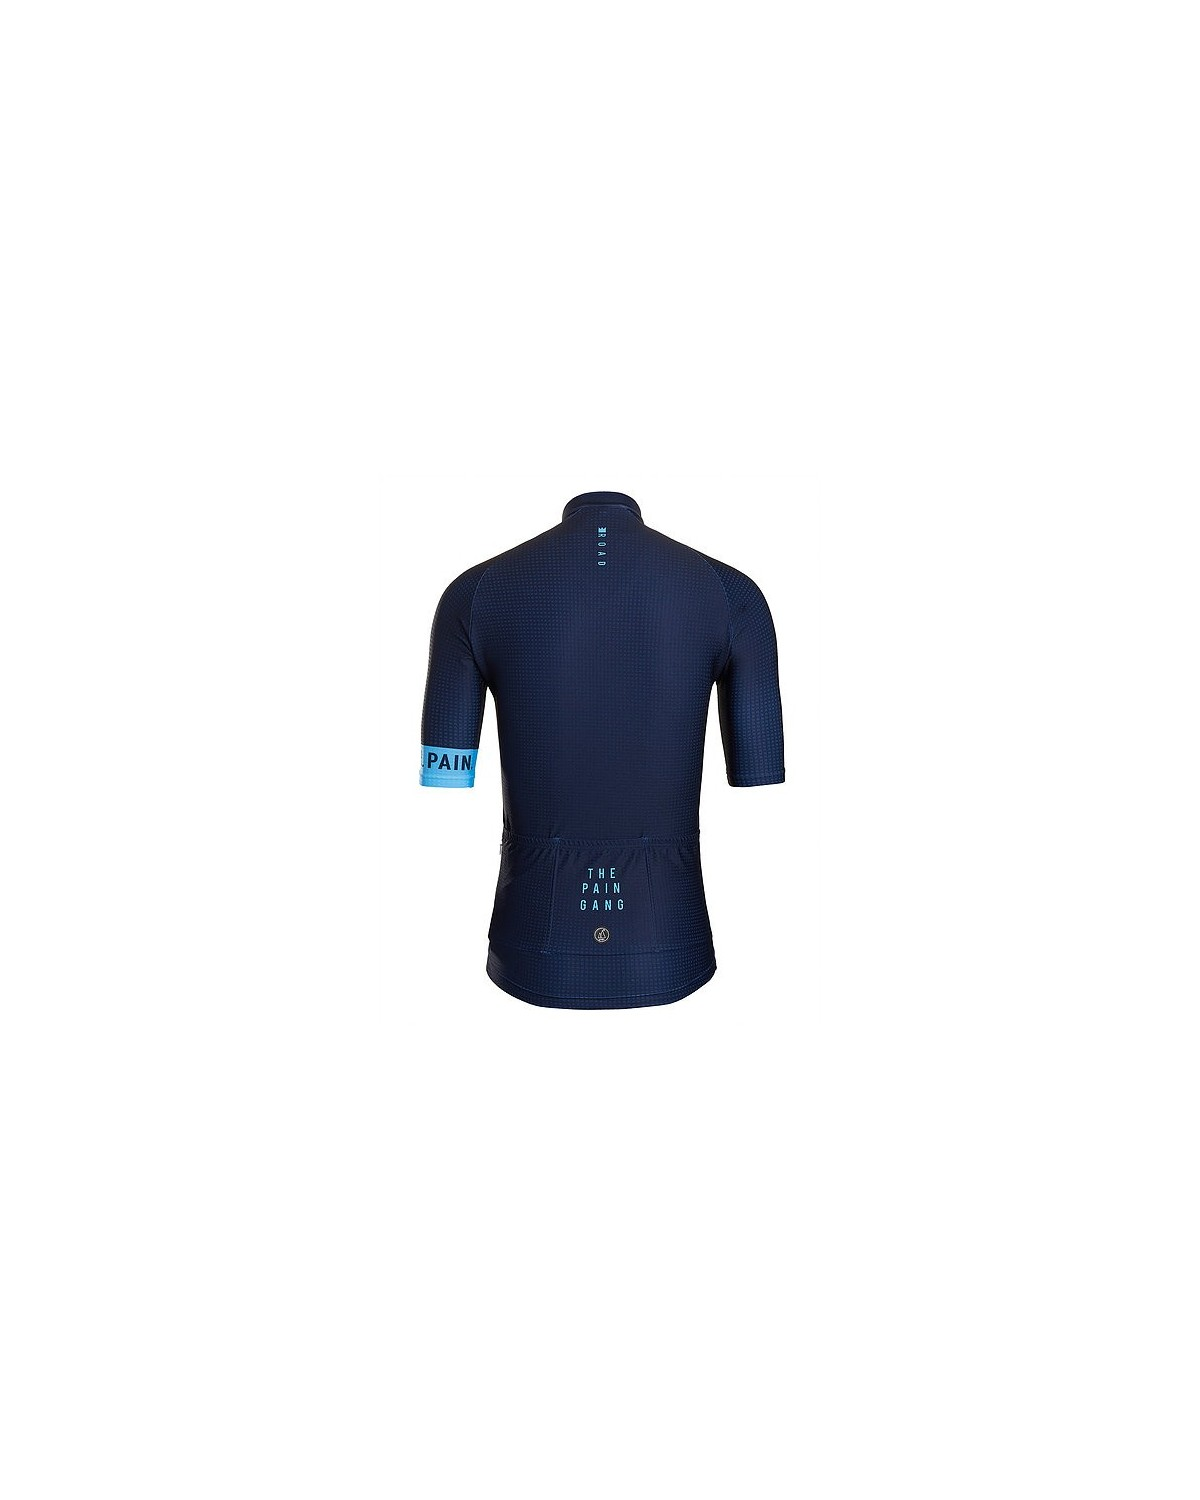 grade cycling Radtrikot king of the road blau